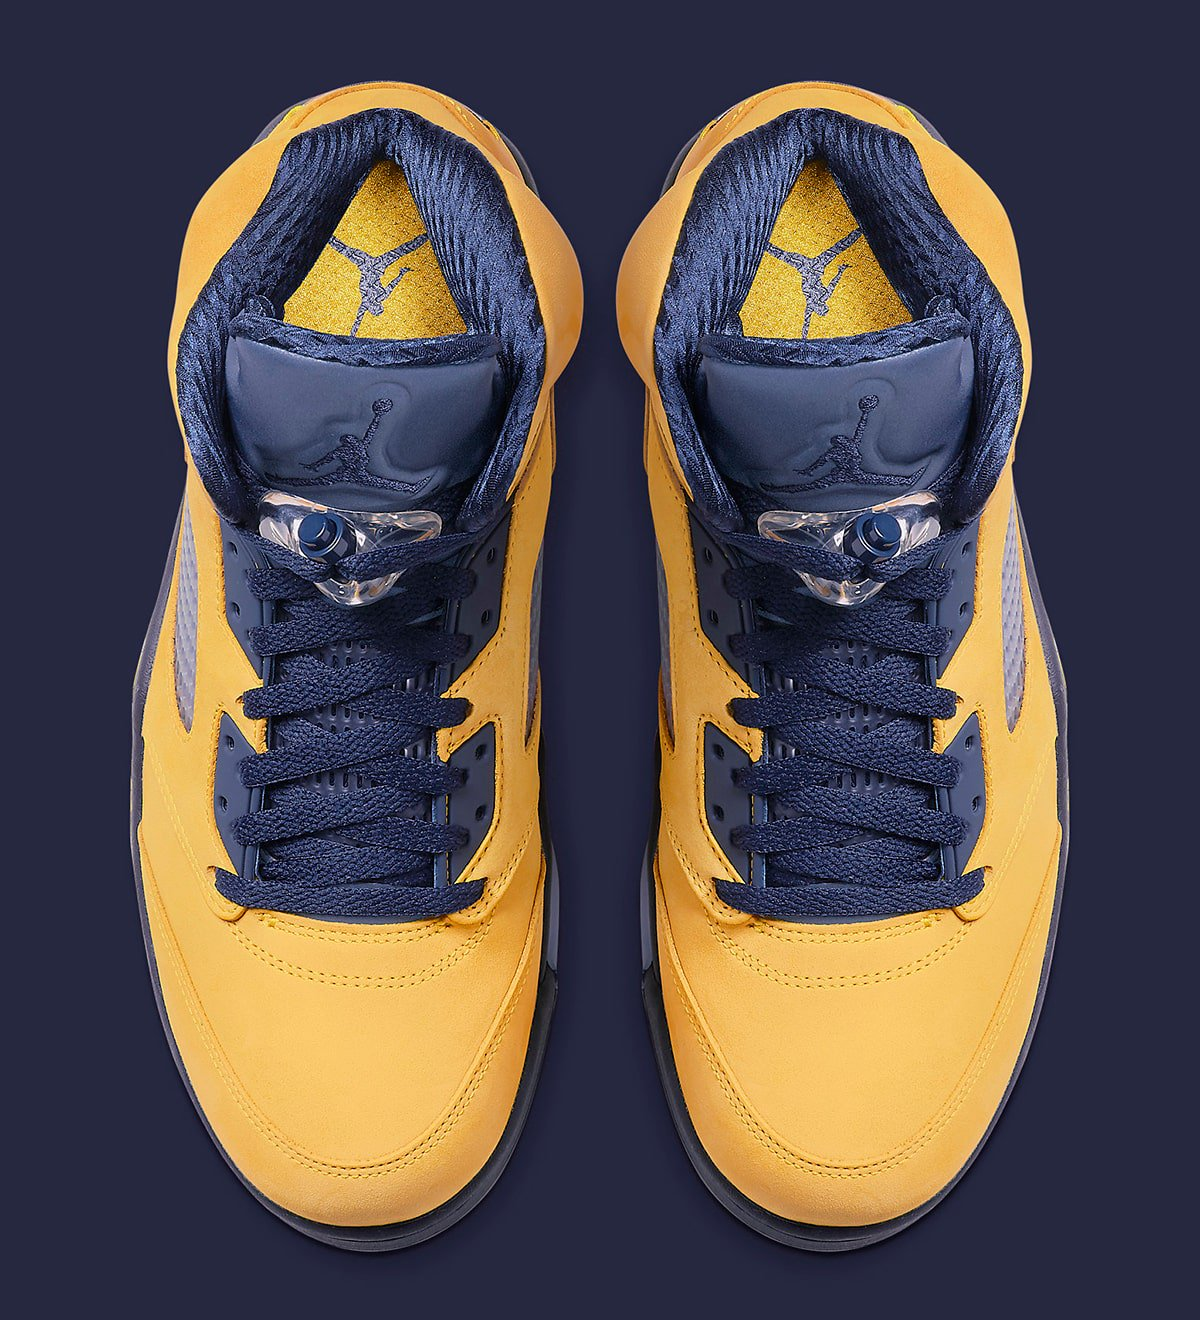 air-jordan-5-michigan-cq9541-704-release-date-4.jpg